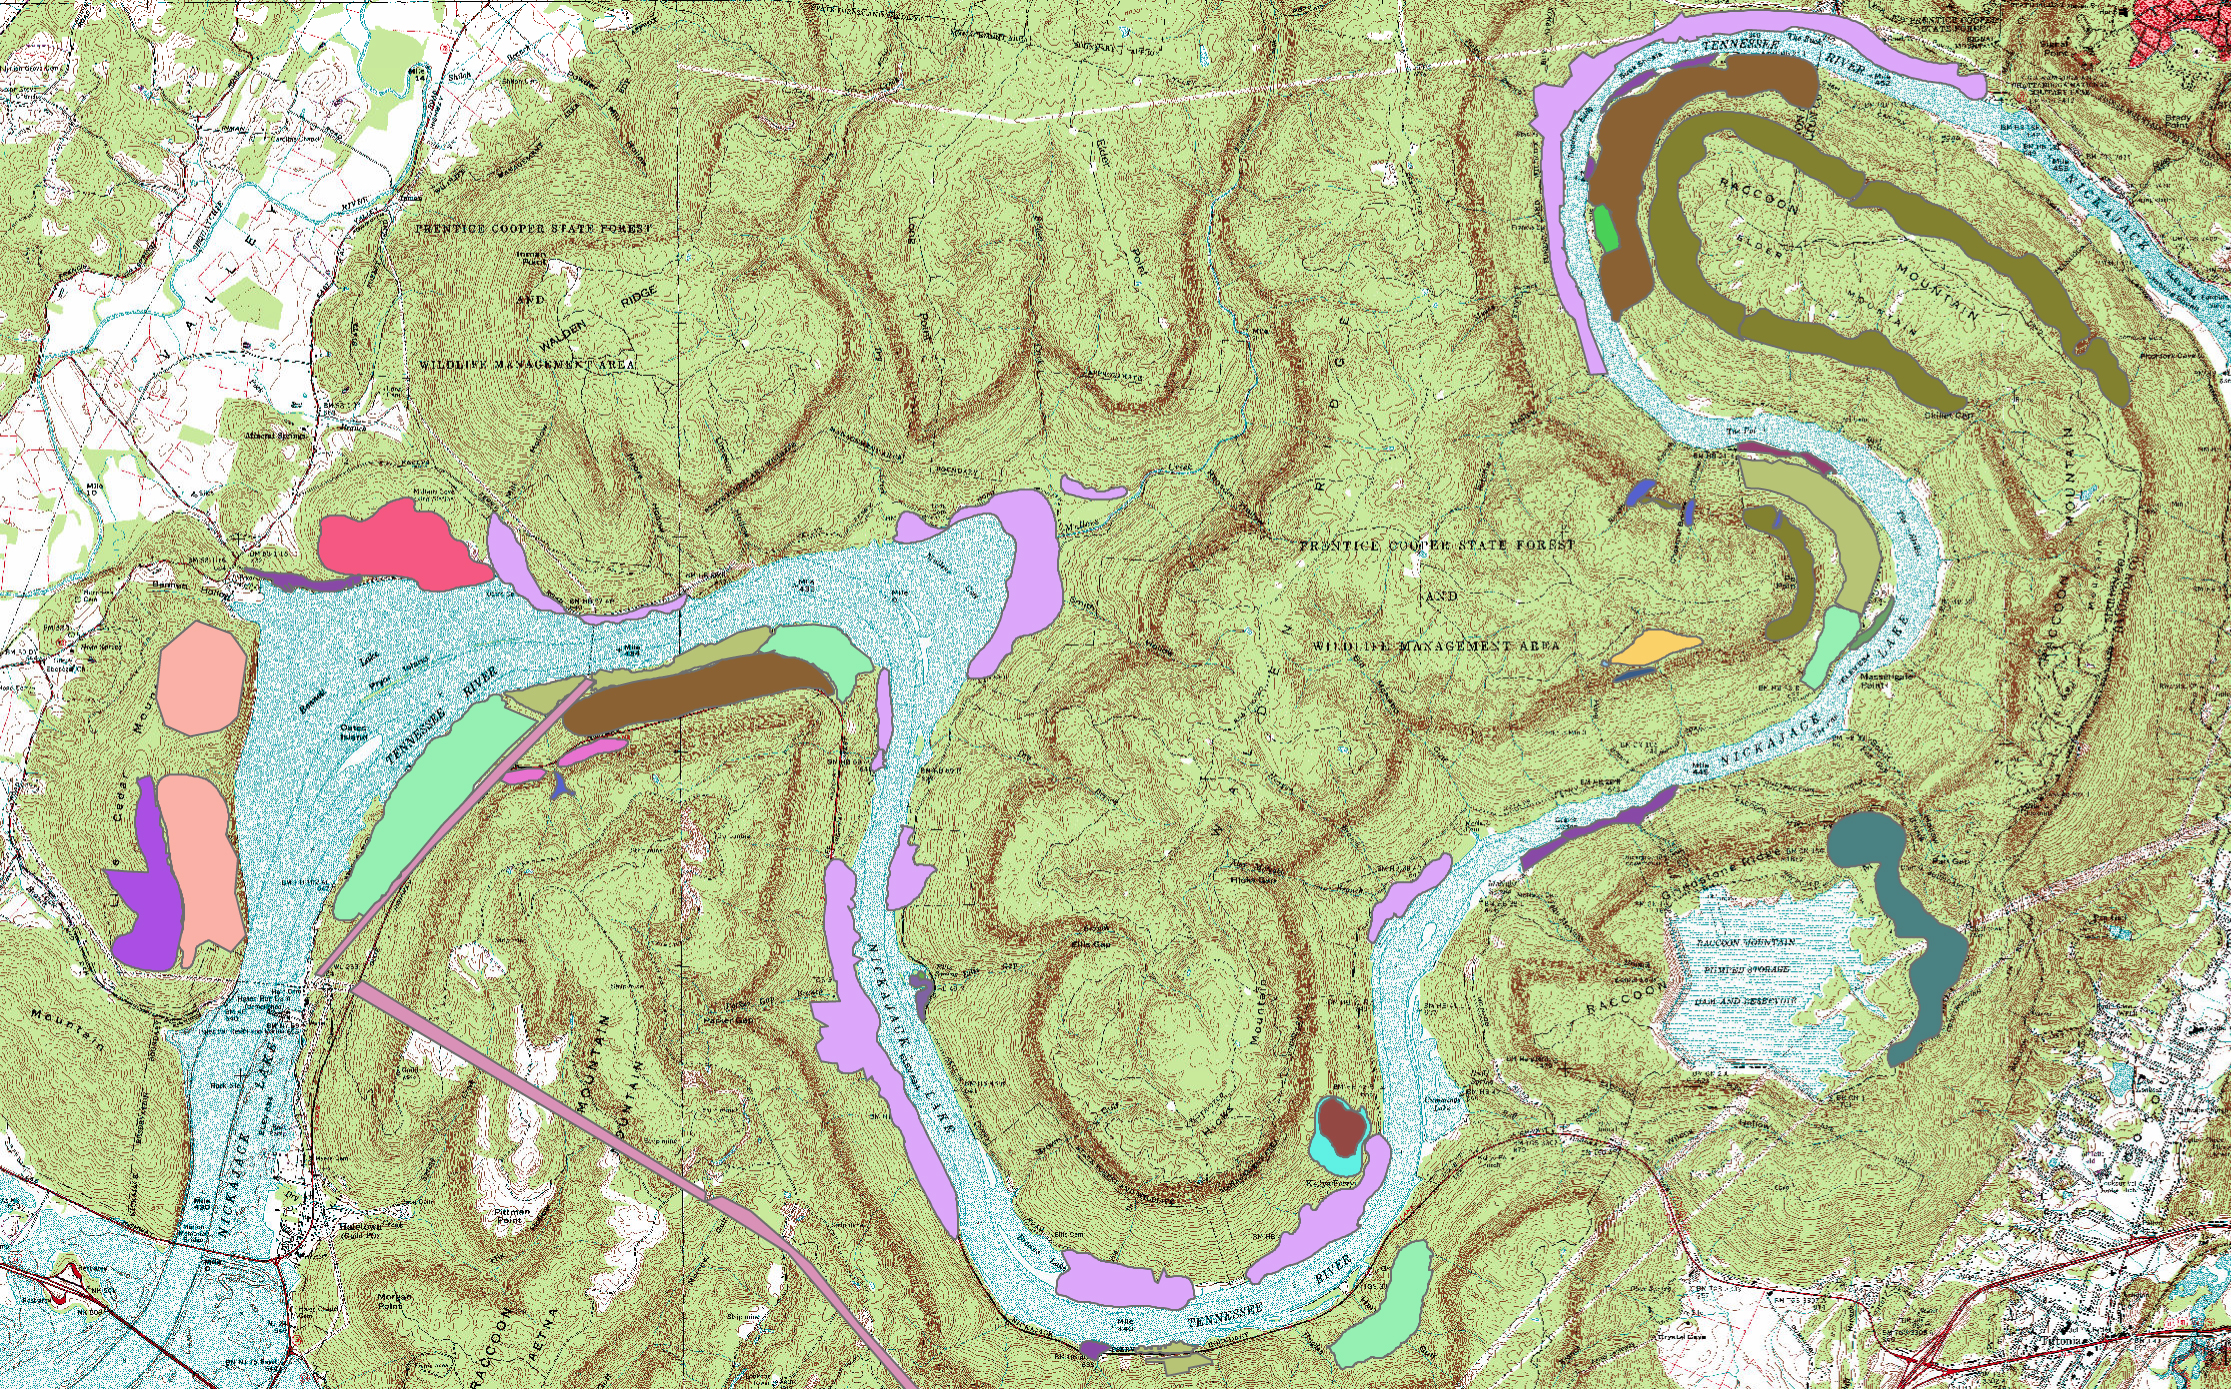 IN PROGRESS: Ground-Truthed Ecological Communities of the Tennessee River Gorge as of June 1, 2015